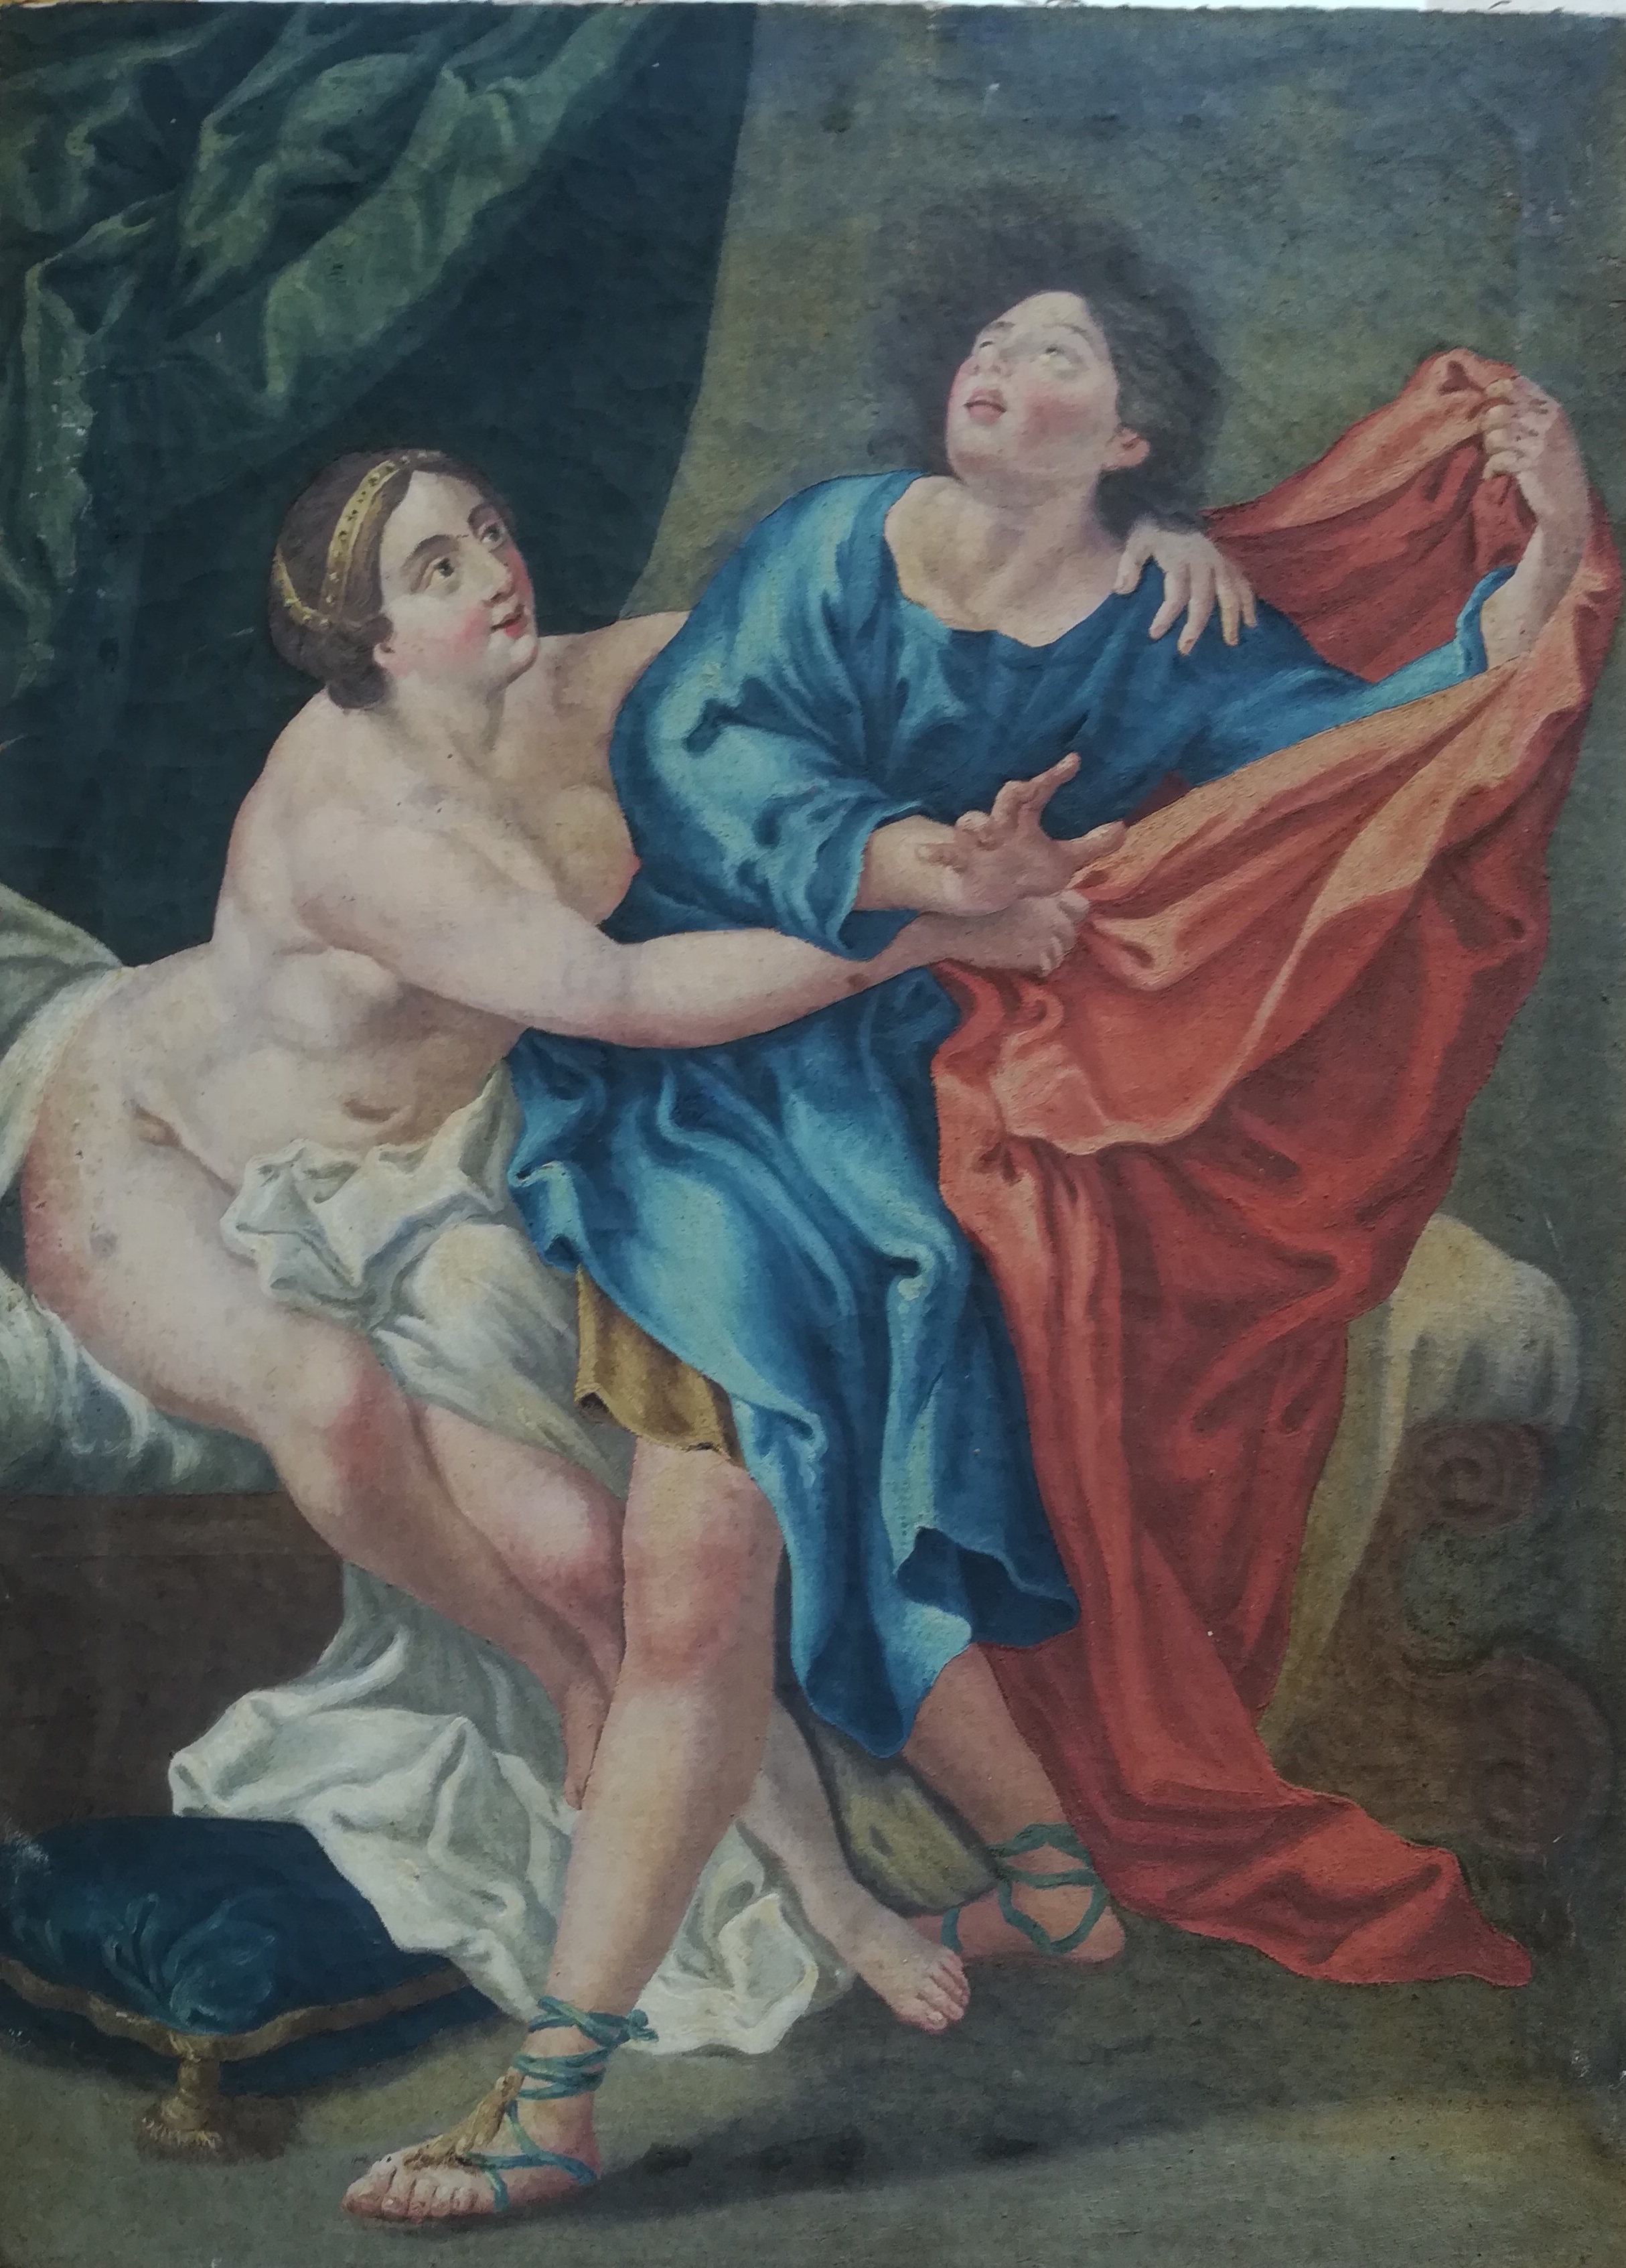 Carlo Cignani (after): Joseph and Potiphar's wife